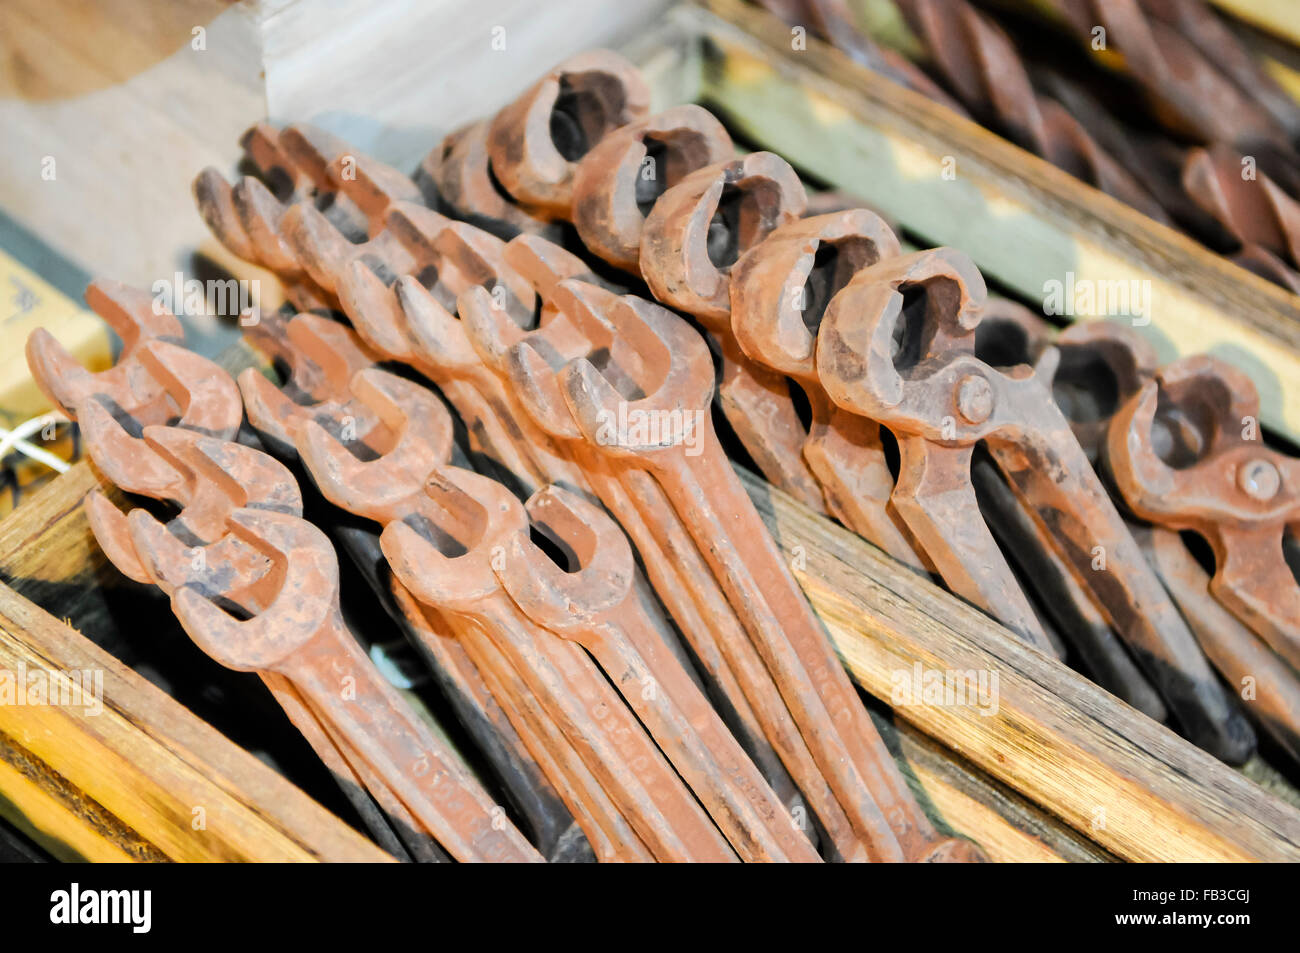 Spanners, pincers and drill bits made entirely from chocolate. - Stock Image